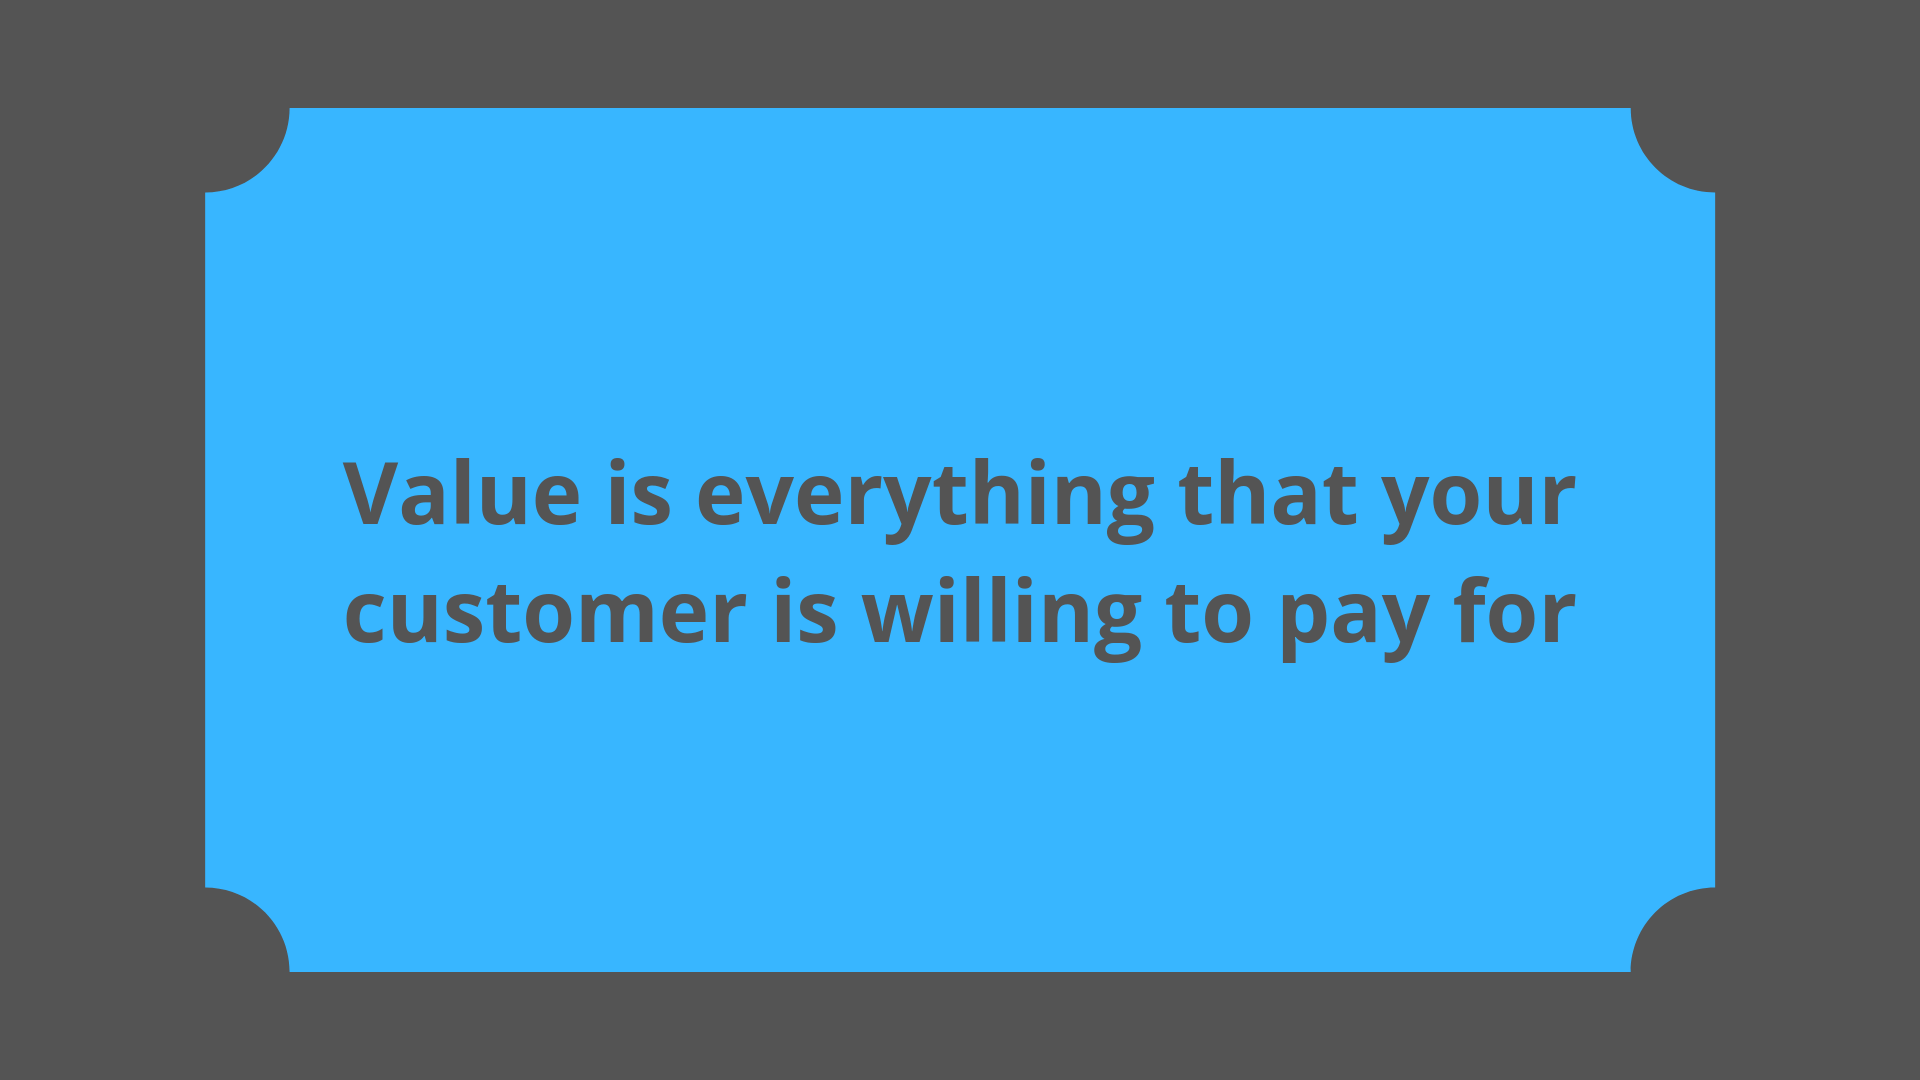 In Lean, value can be summarized as everything that your customer is willing to pay for